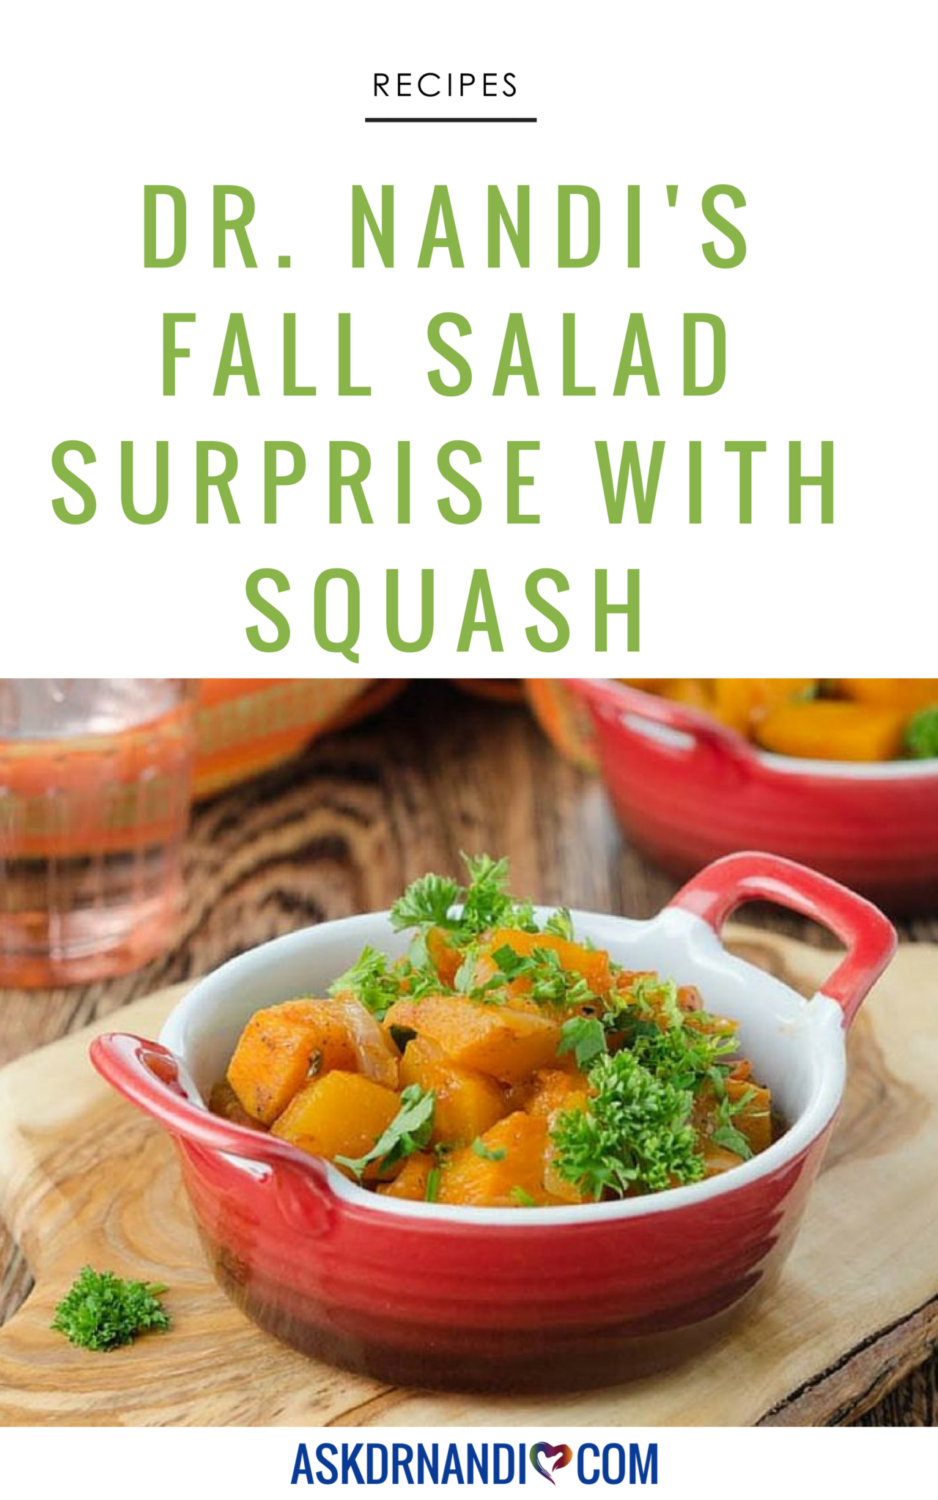 Dr. Nandi's Fall Salad Surprise